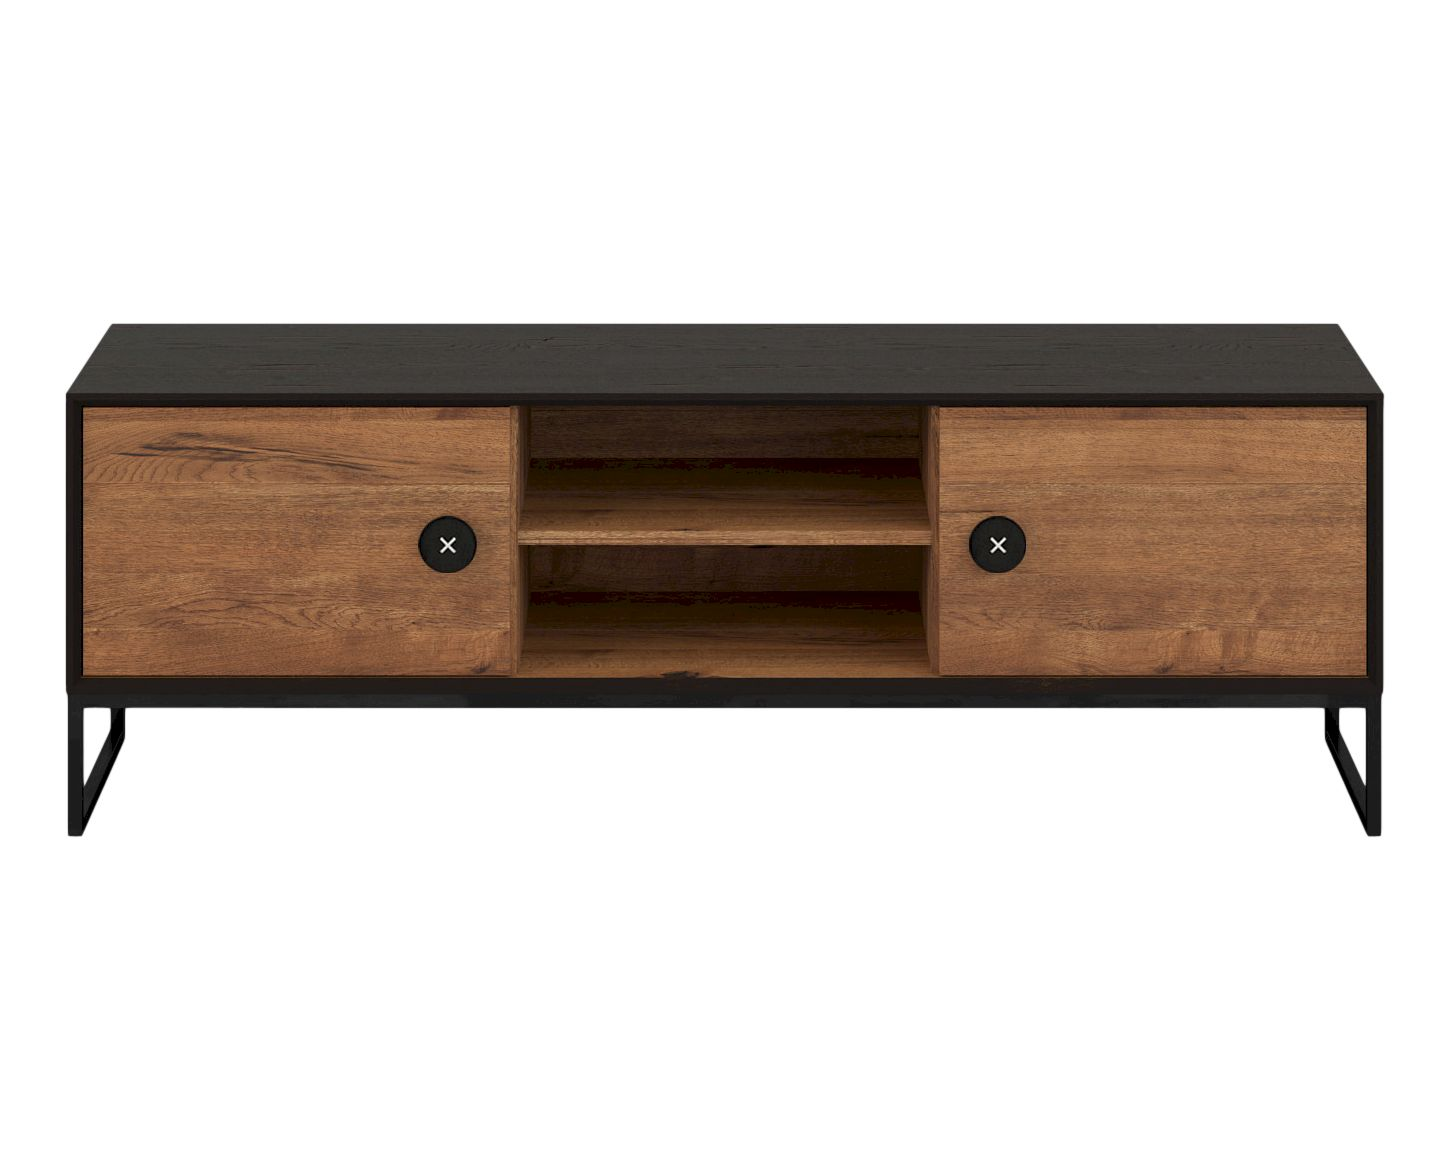 Massivholz Tv Bank Bodahl Massivholz Rustic Oak Tv-bank Palermo • Slewo.com